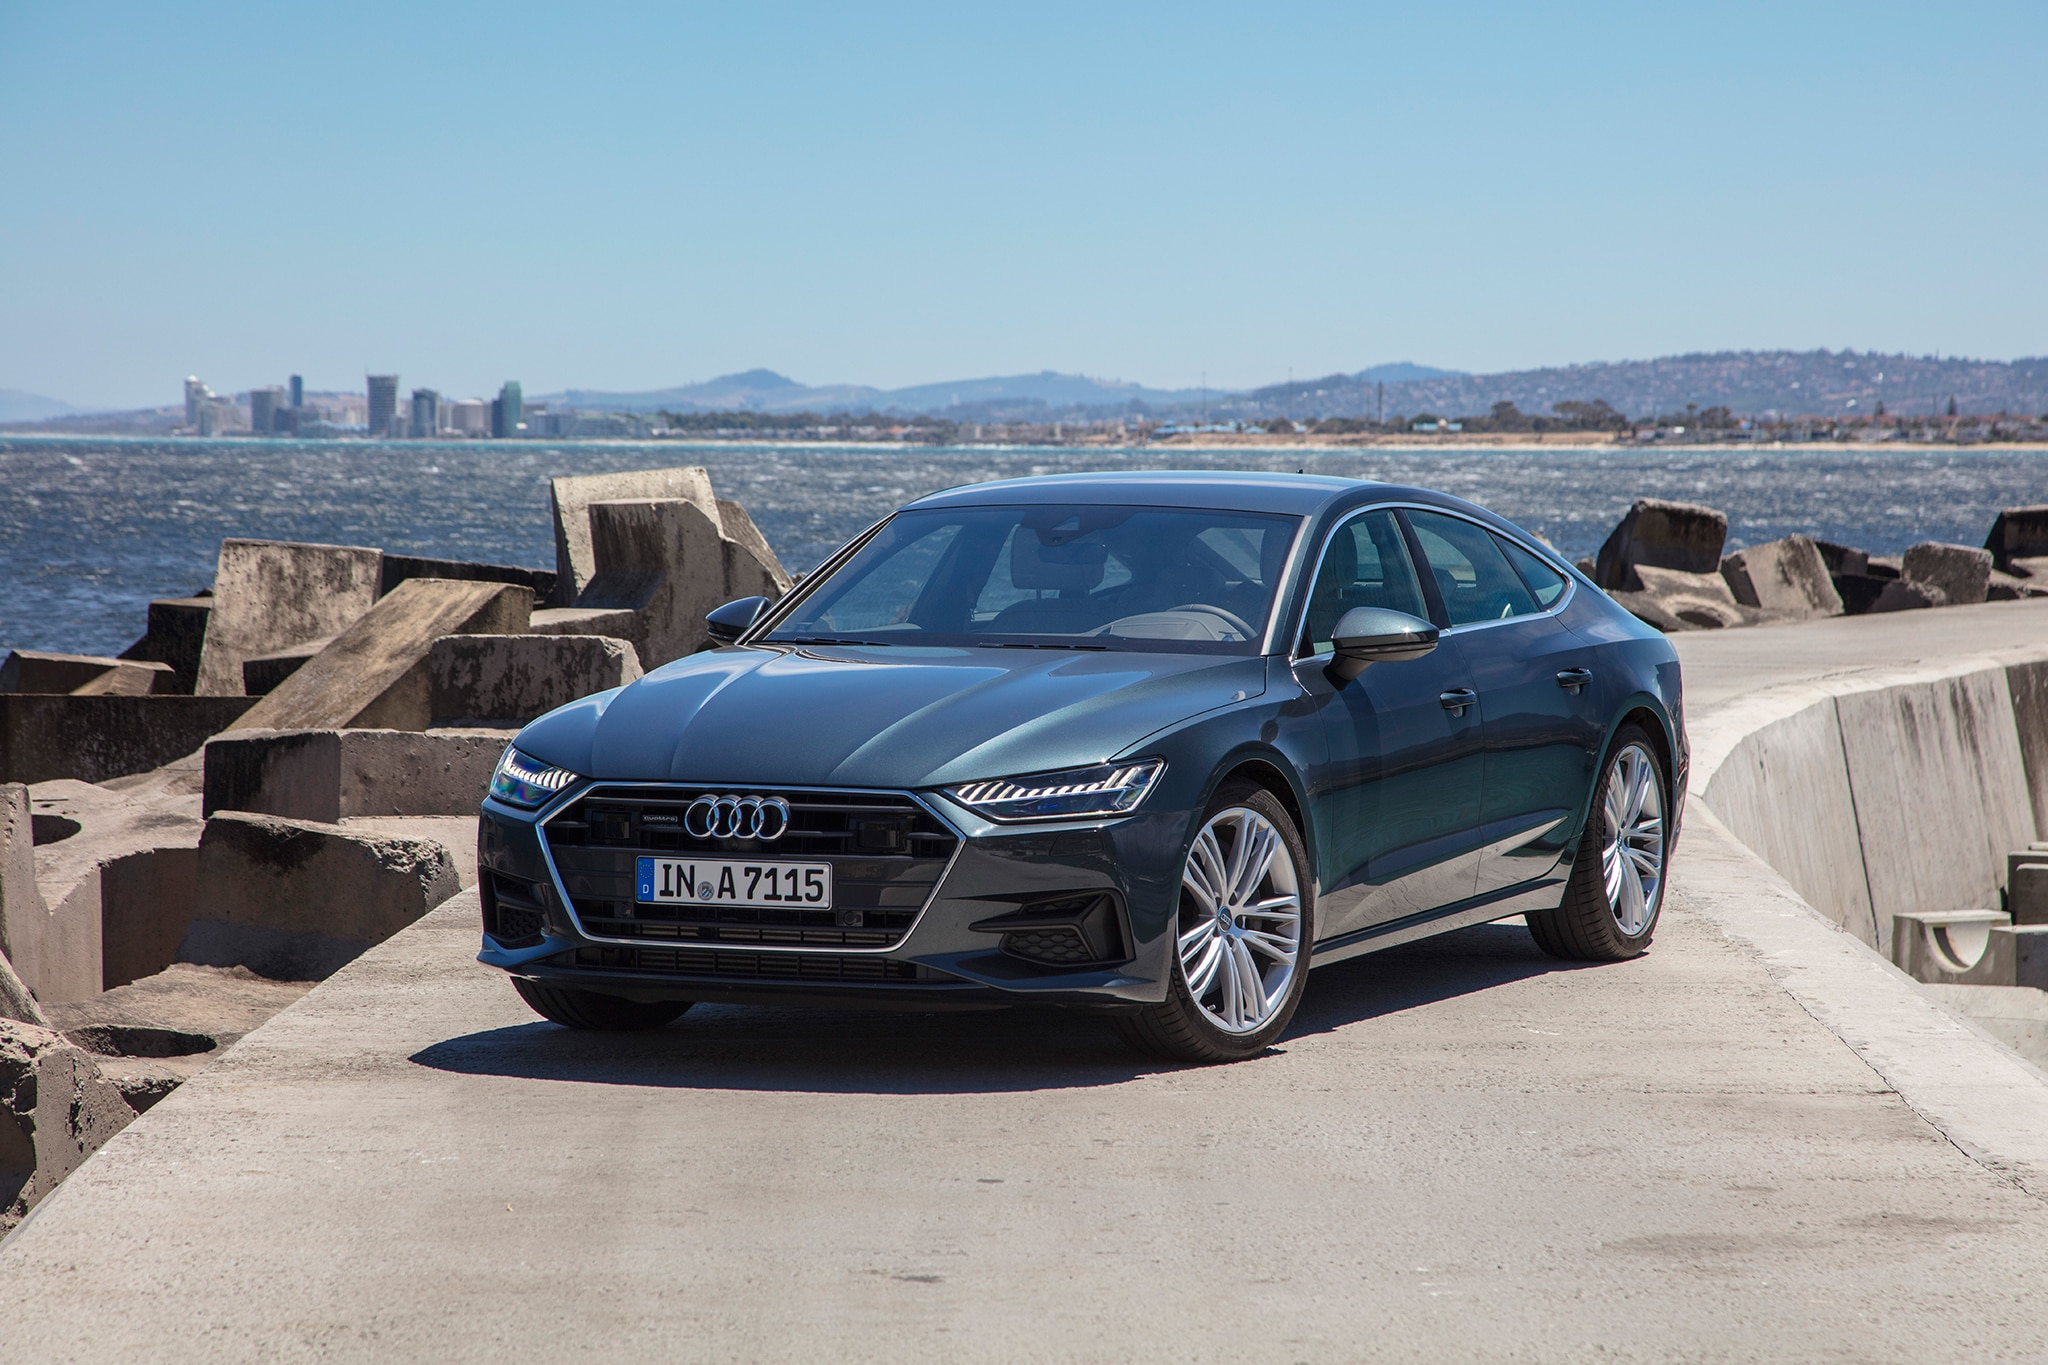 2019 Audi A7 Sportback First Drive Review Automobile Magazine